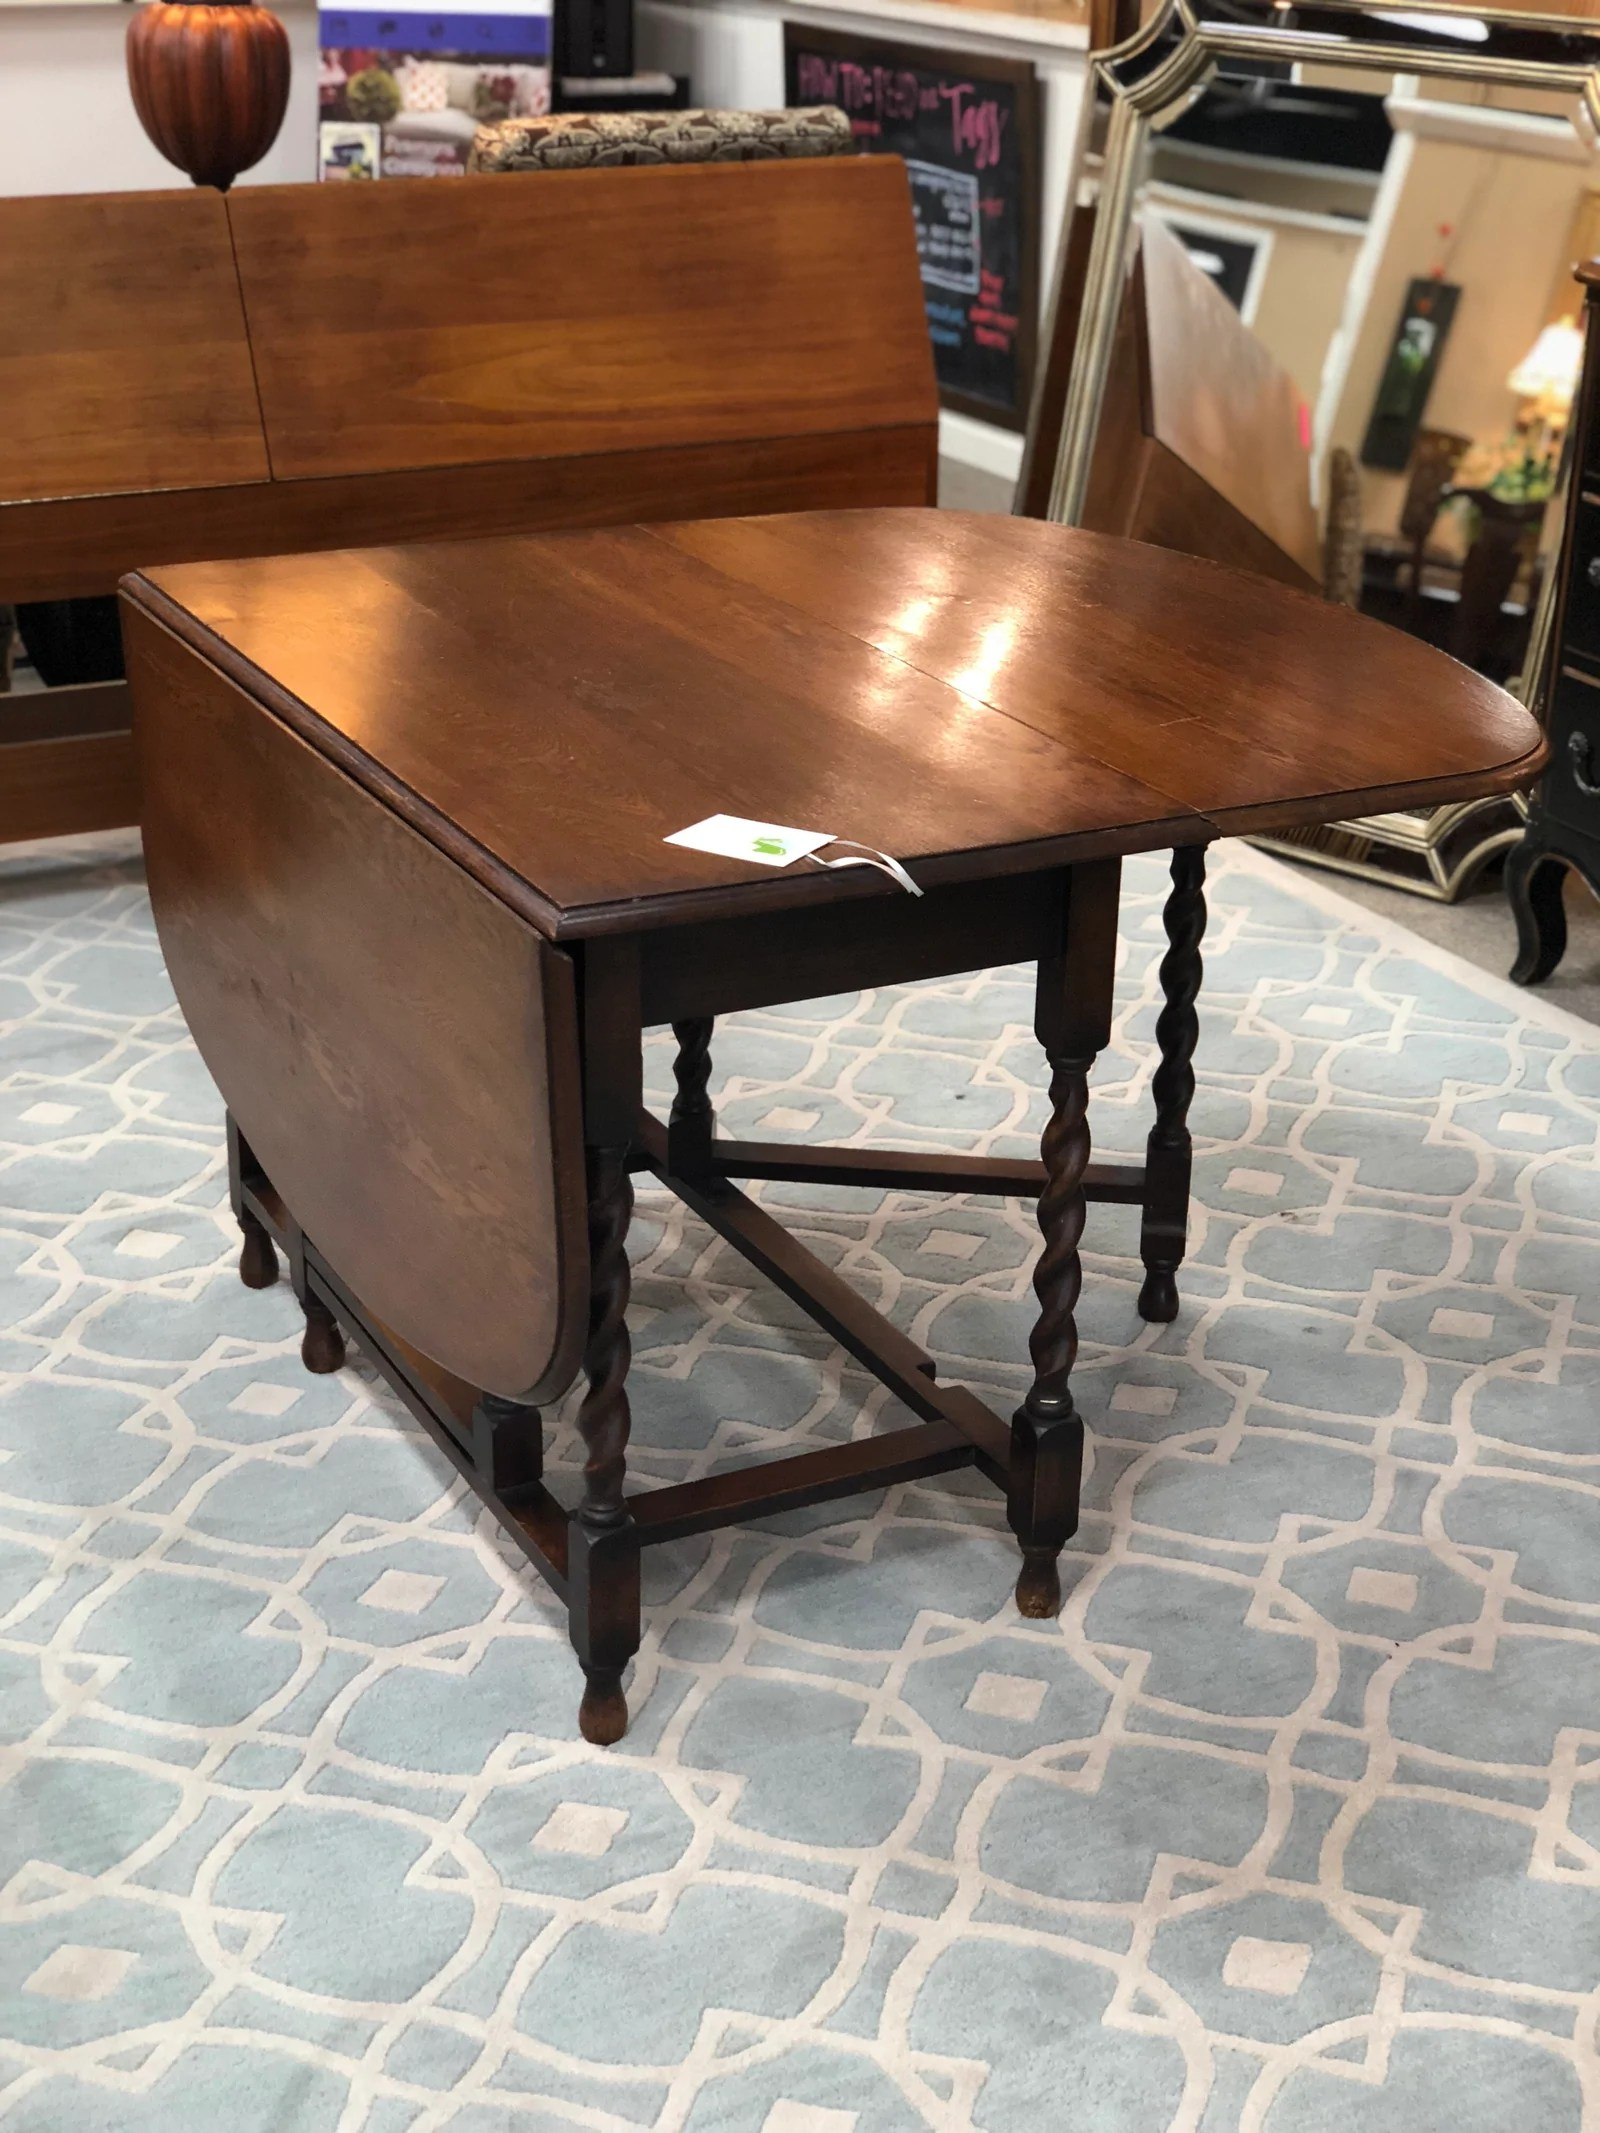 Fullsize Of Antique Drop Leaf Table